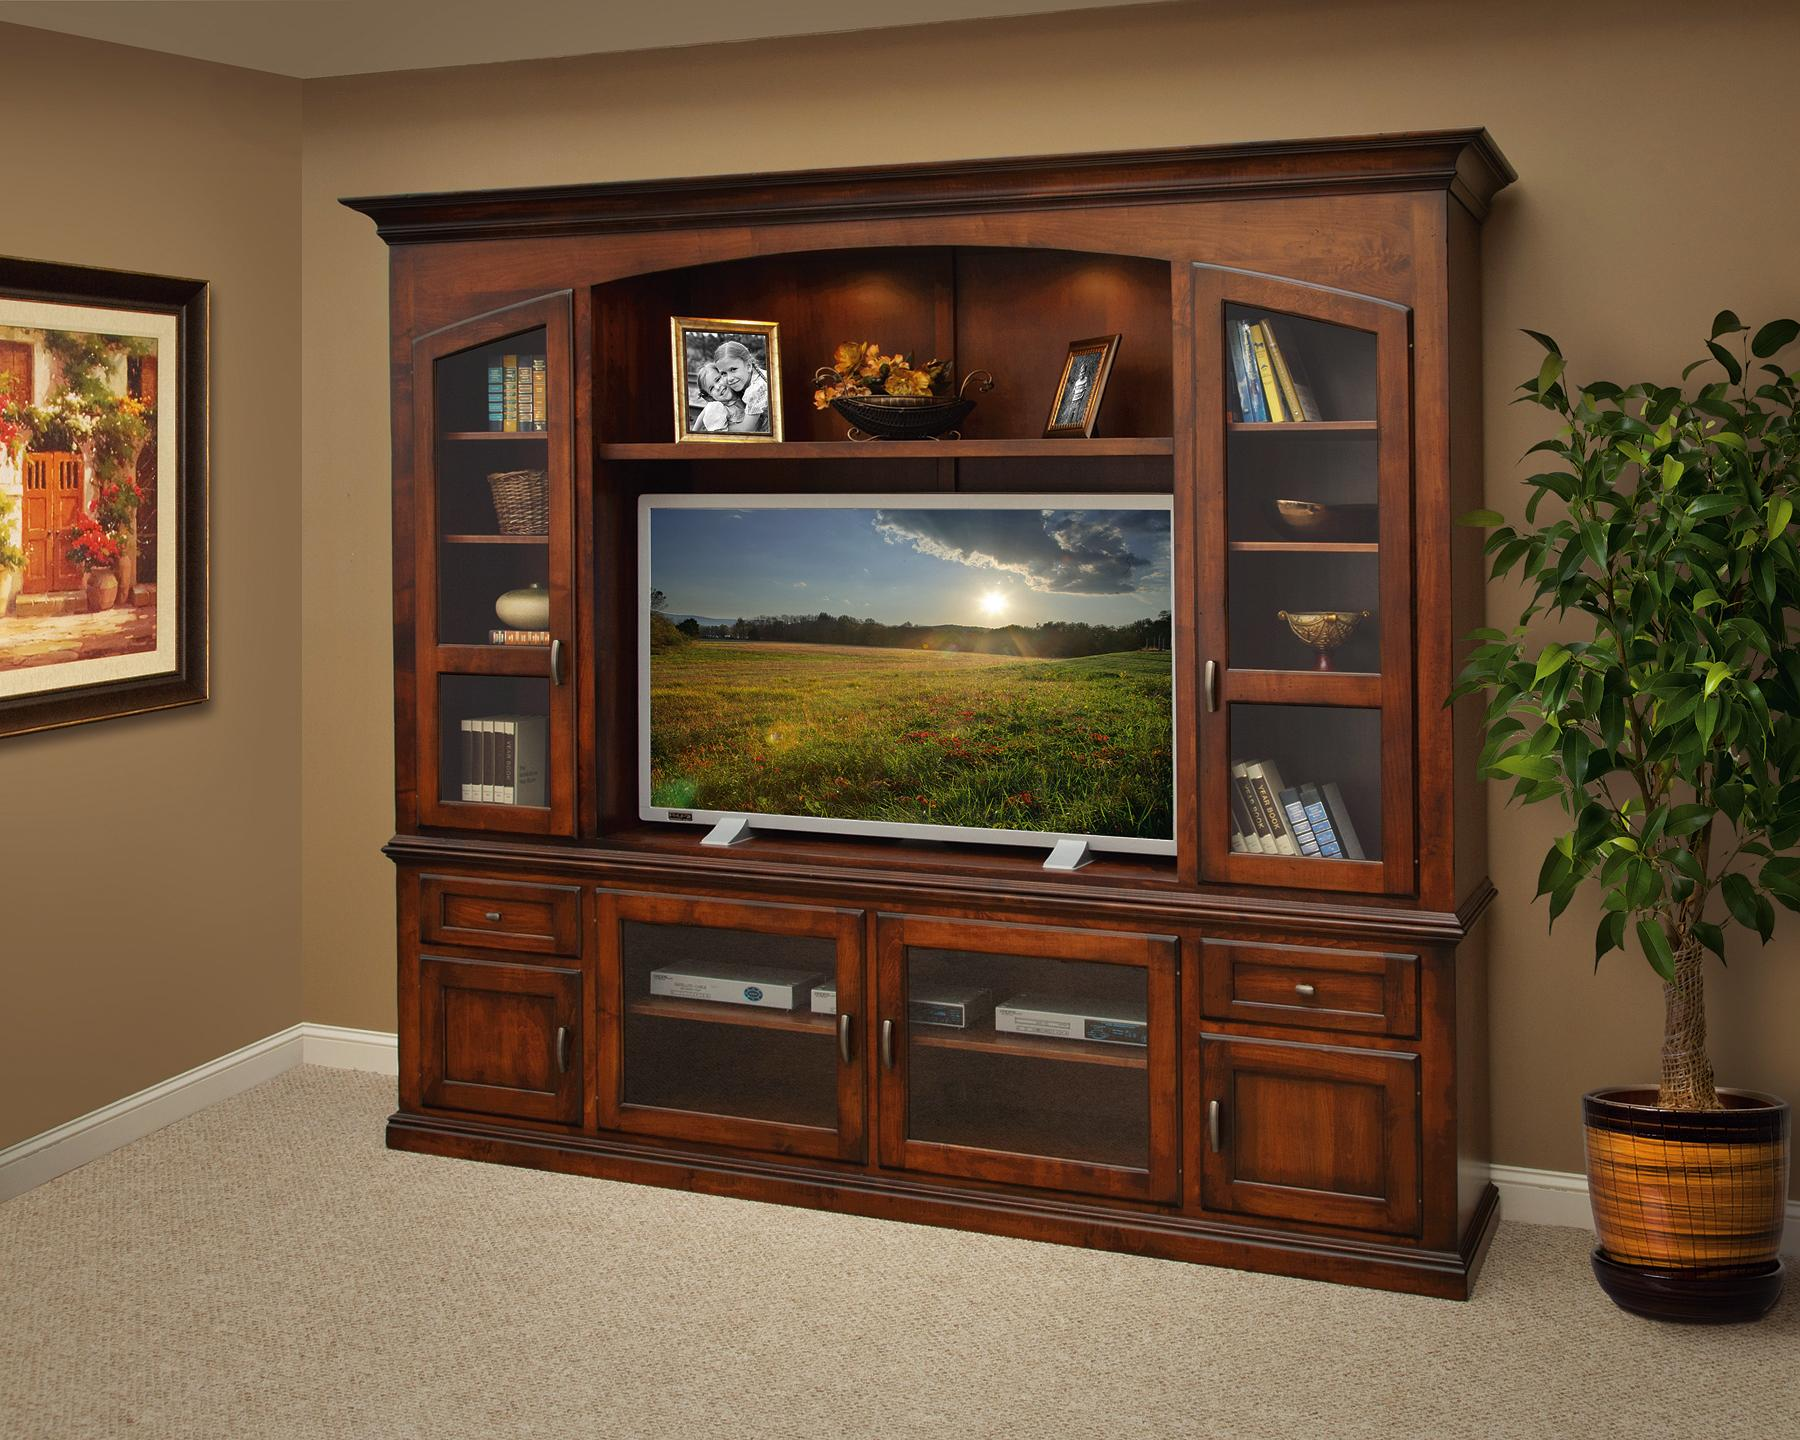 Bailey feature entertainment center